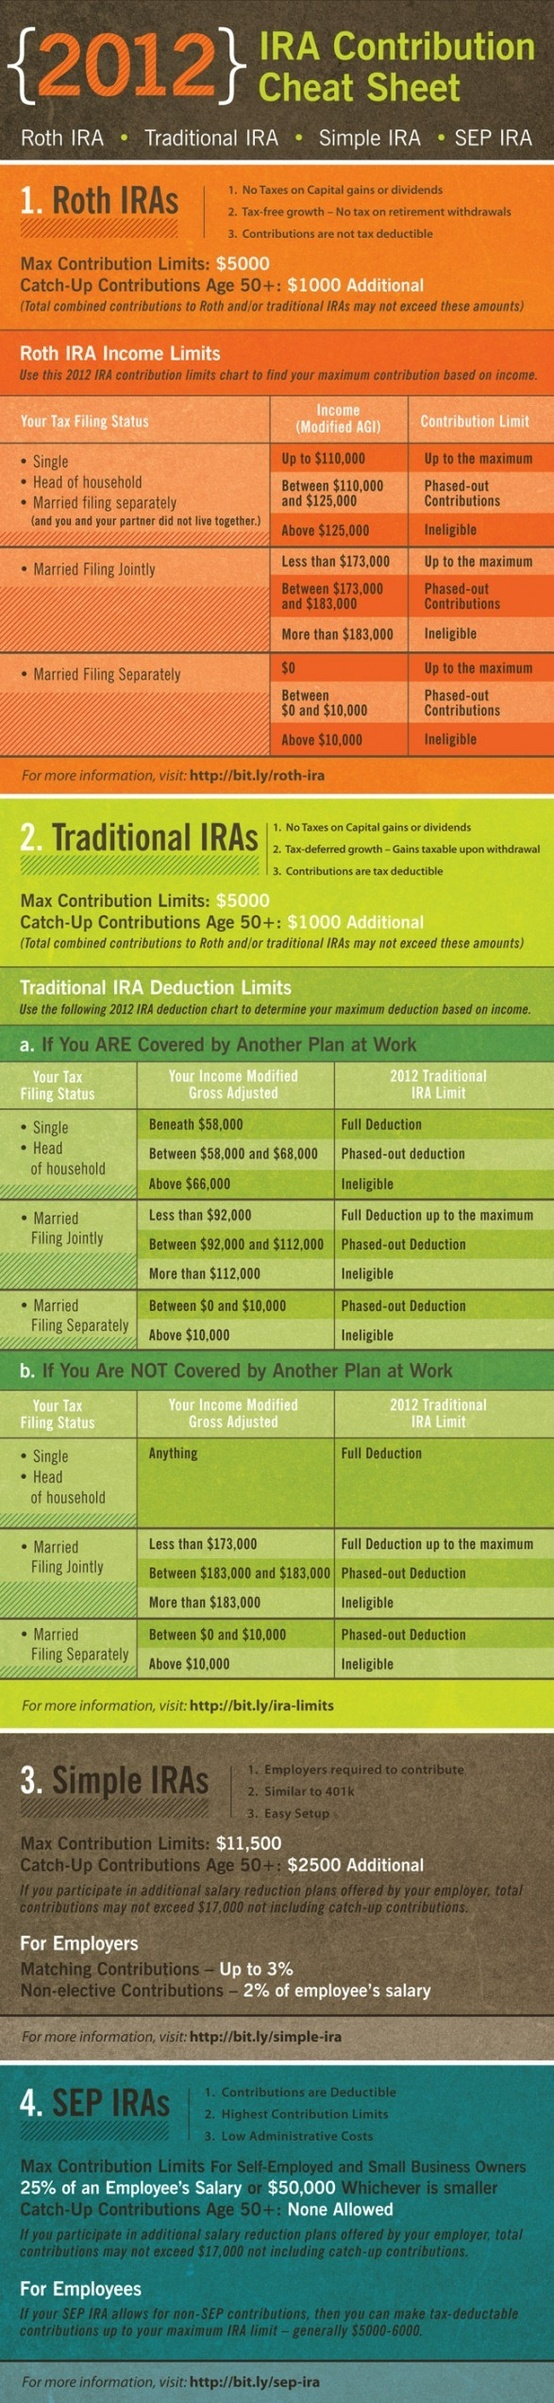 Want to max out your IRA before the end of the year to maximize your tax benefits?  Here's the cheat sheet for you!